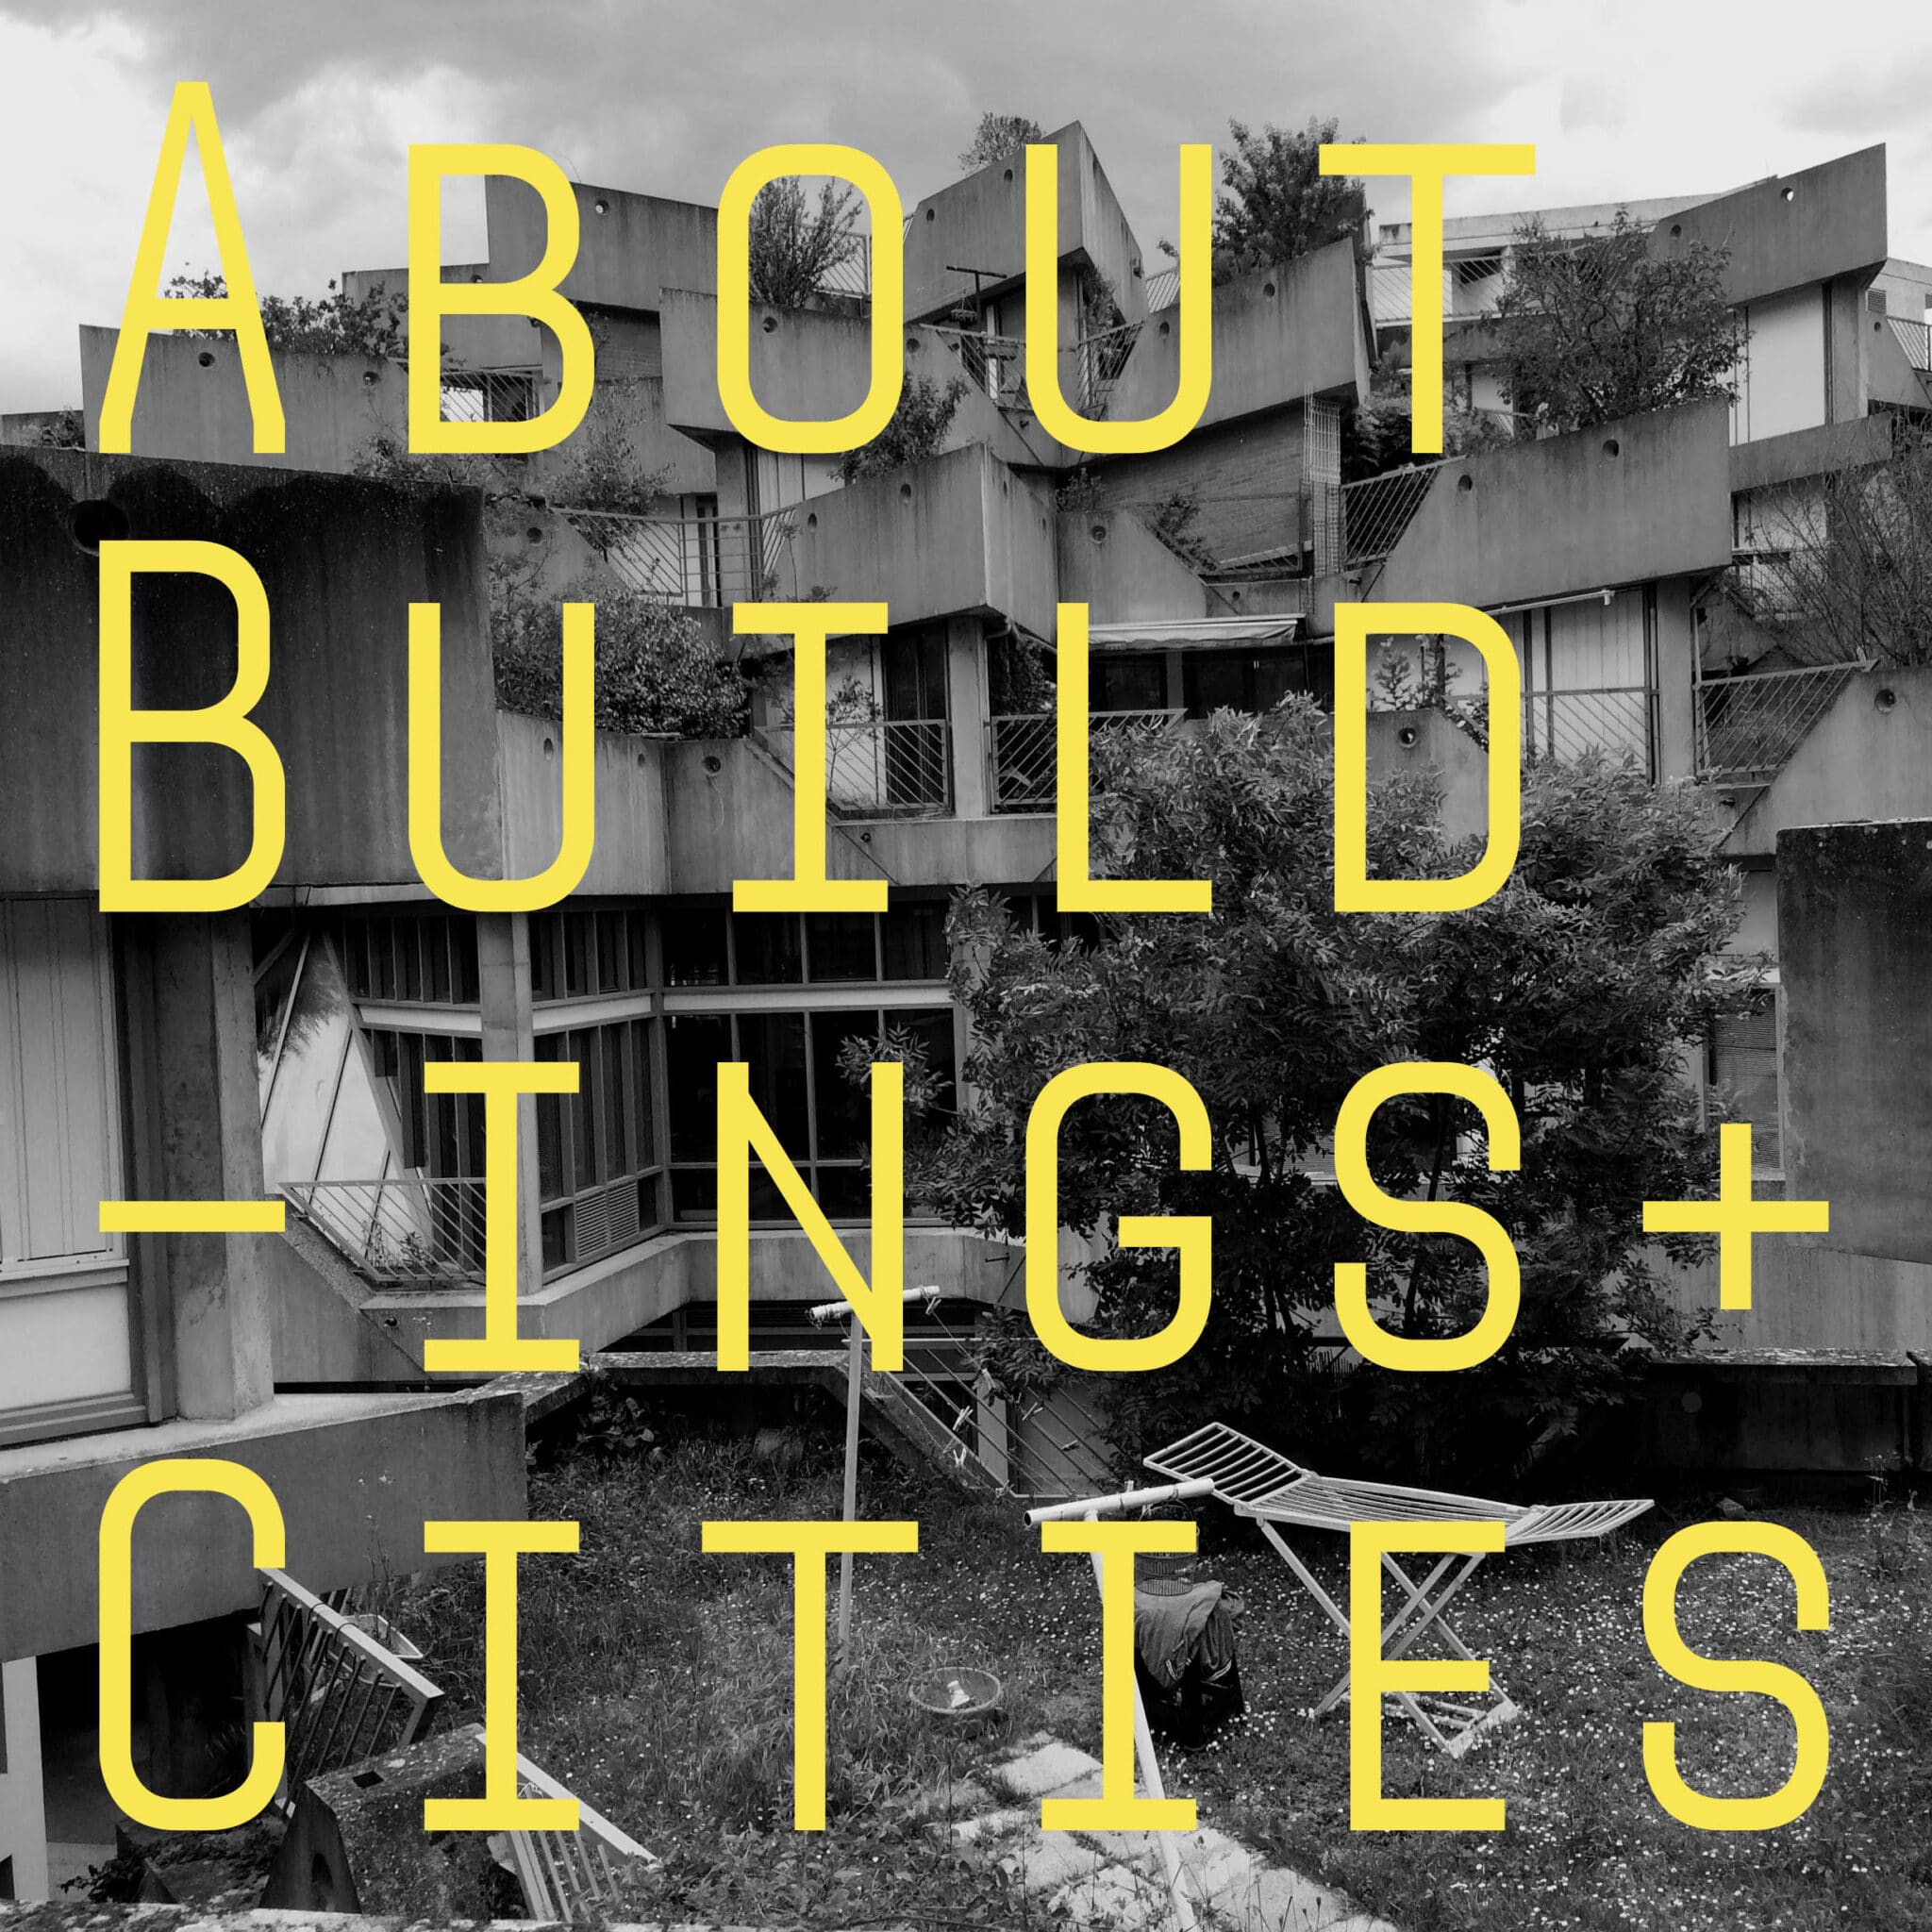 About Buildings and Cities